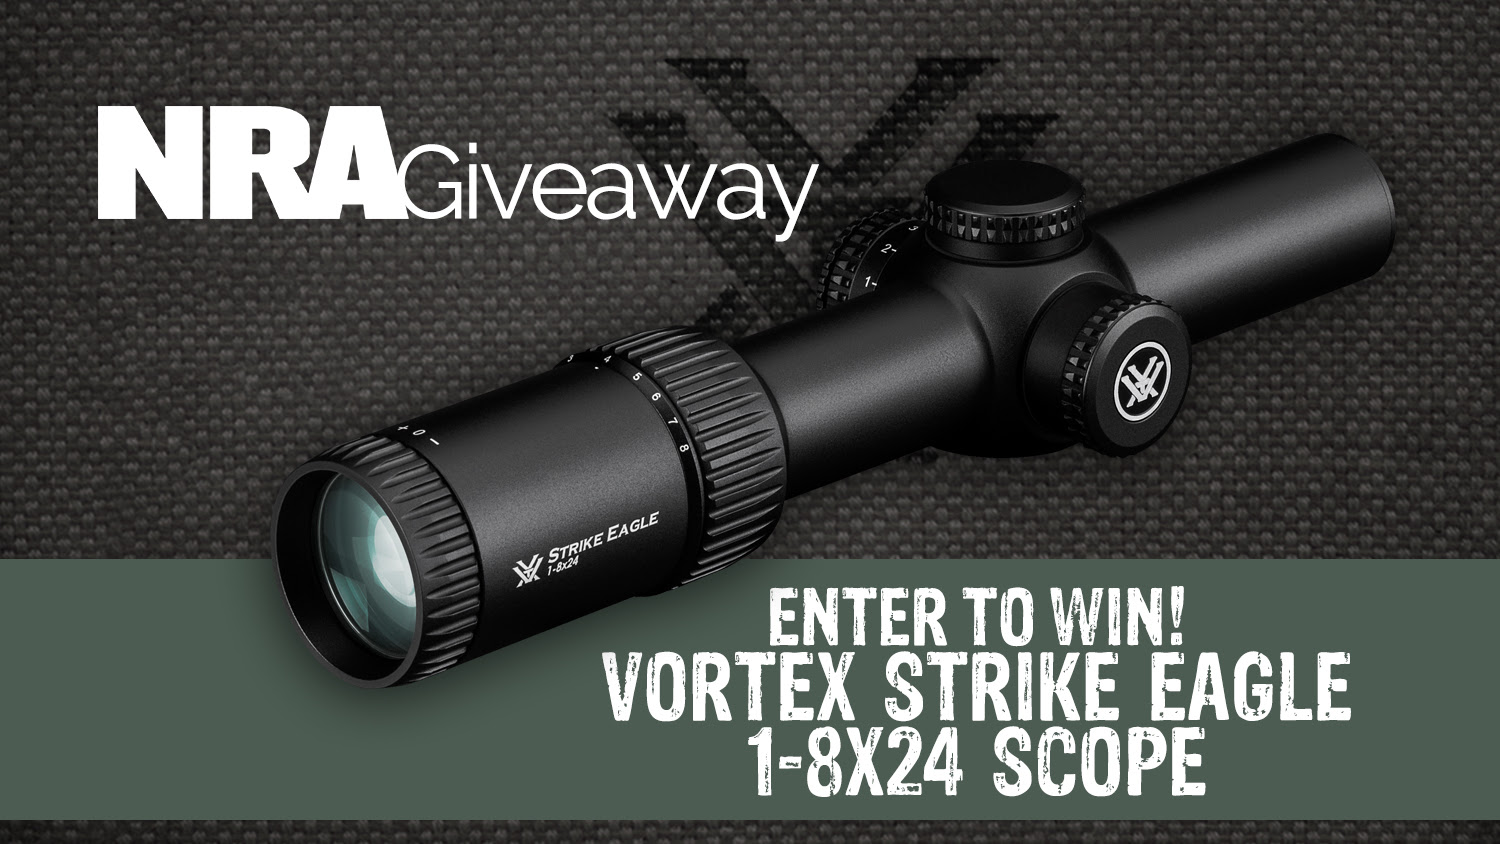 Don't miss this opportunity to take a Vortex 1-8x24 Strike Eagle scope home!